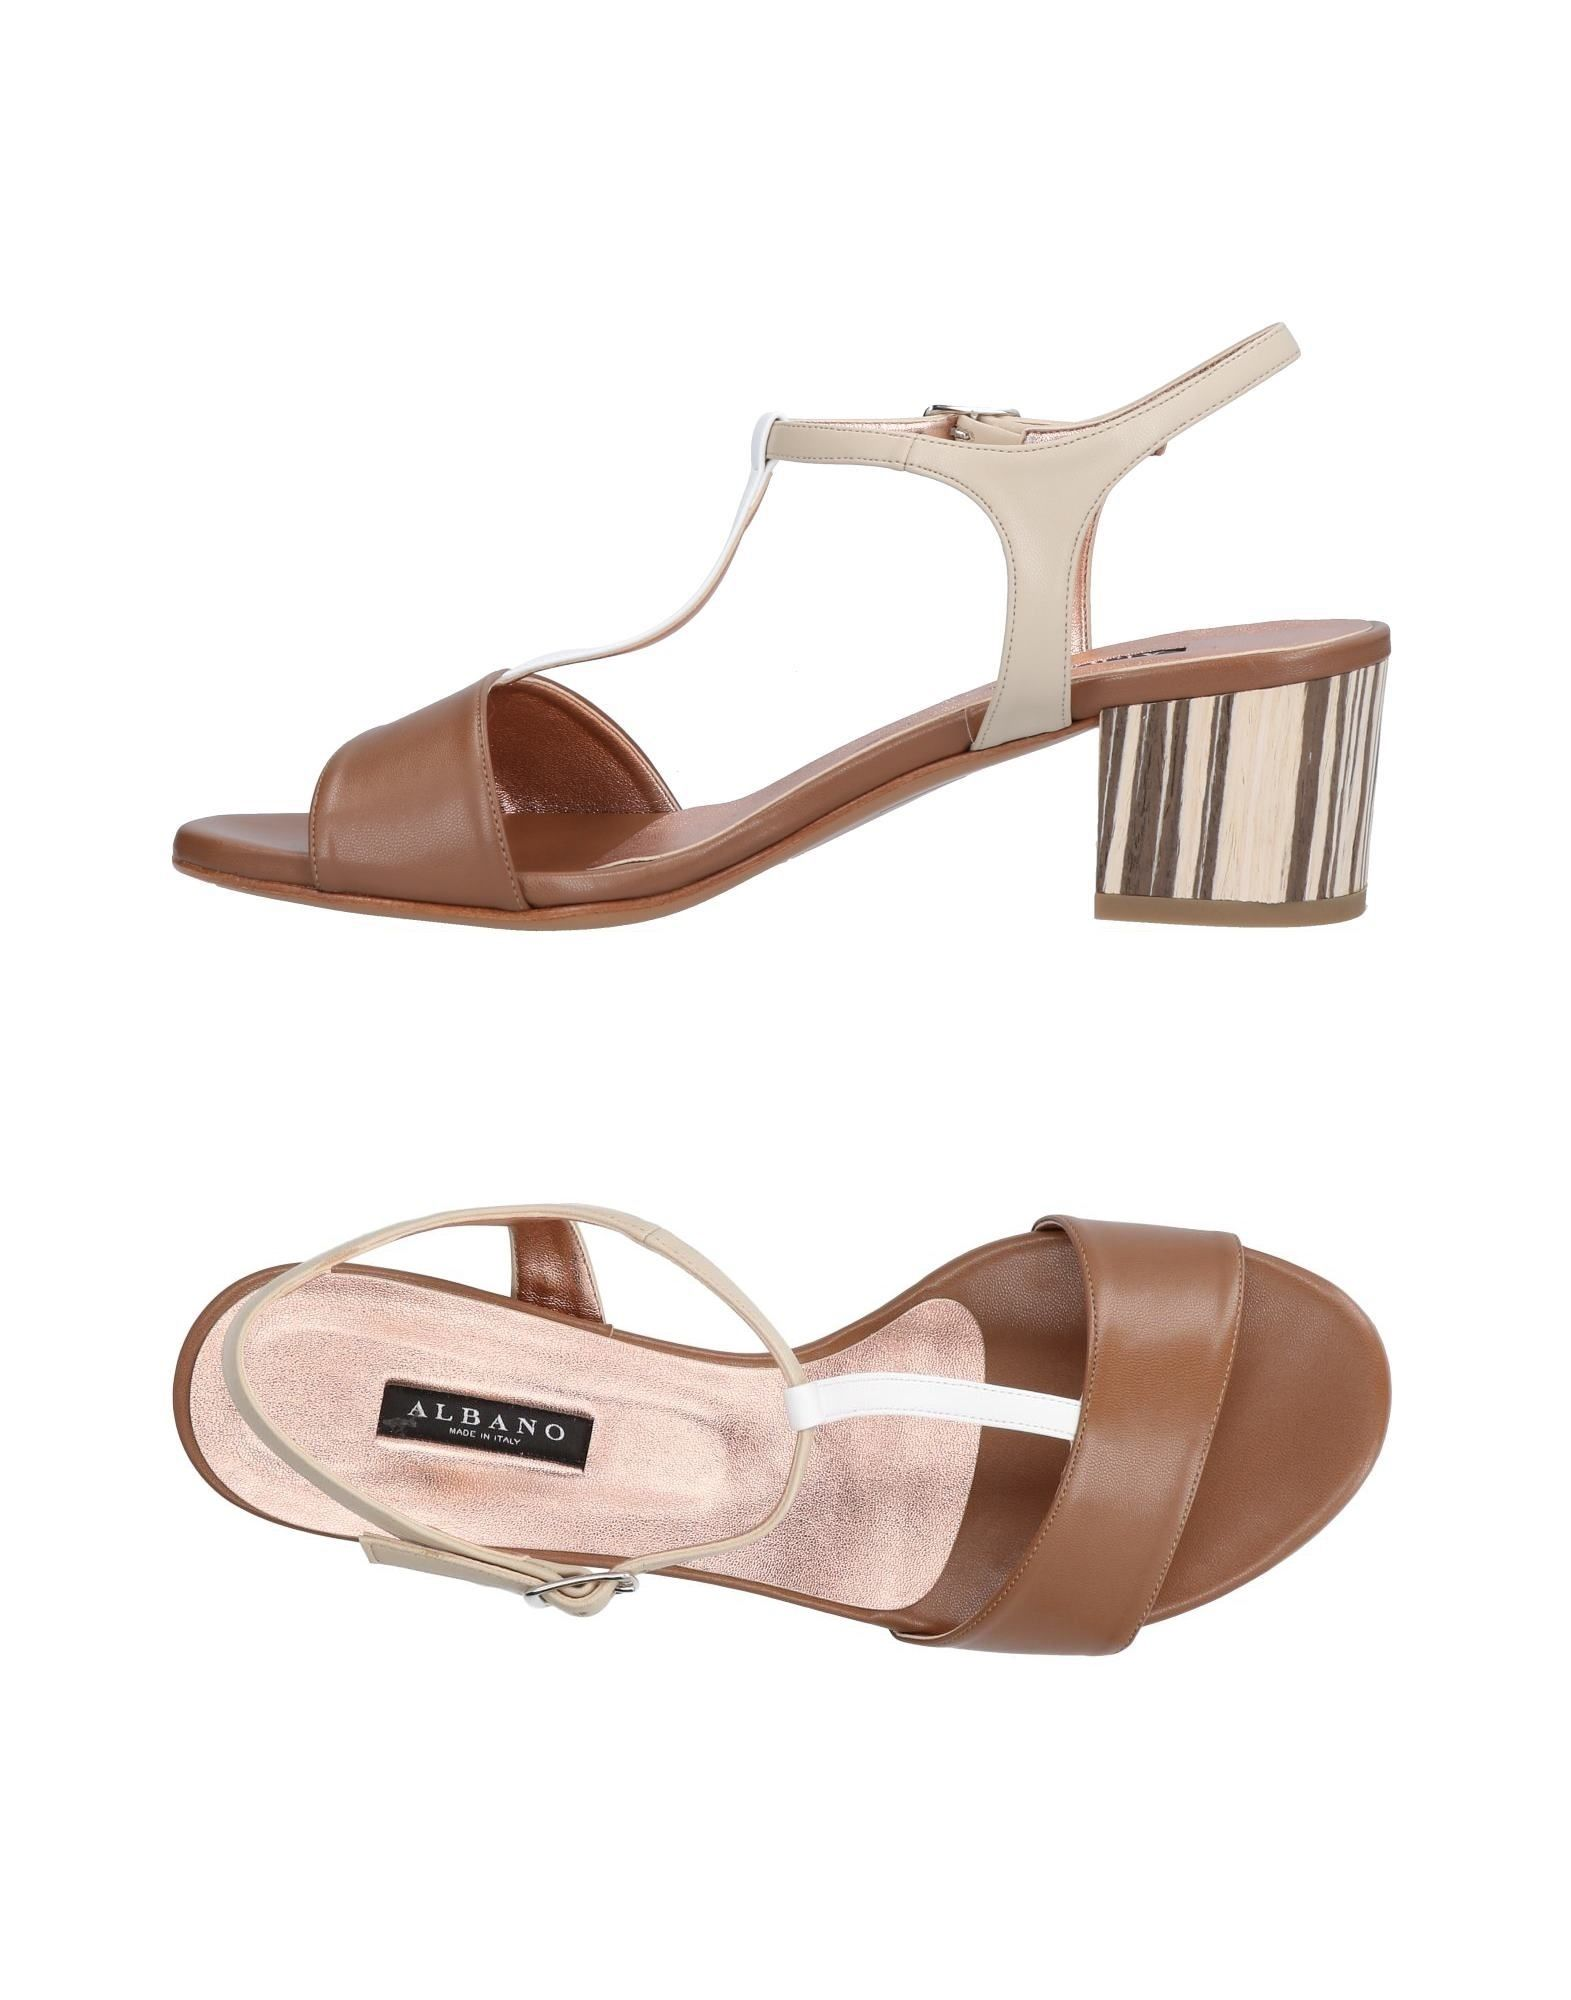 Albano Sandals Sandals - Women Albano Sandals Albano online on  Canada - 11474950LV e012cc